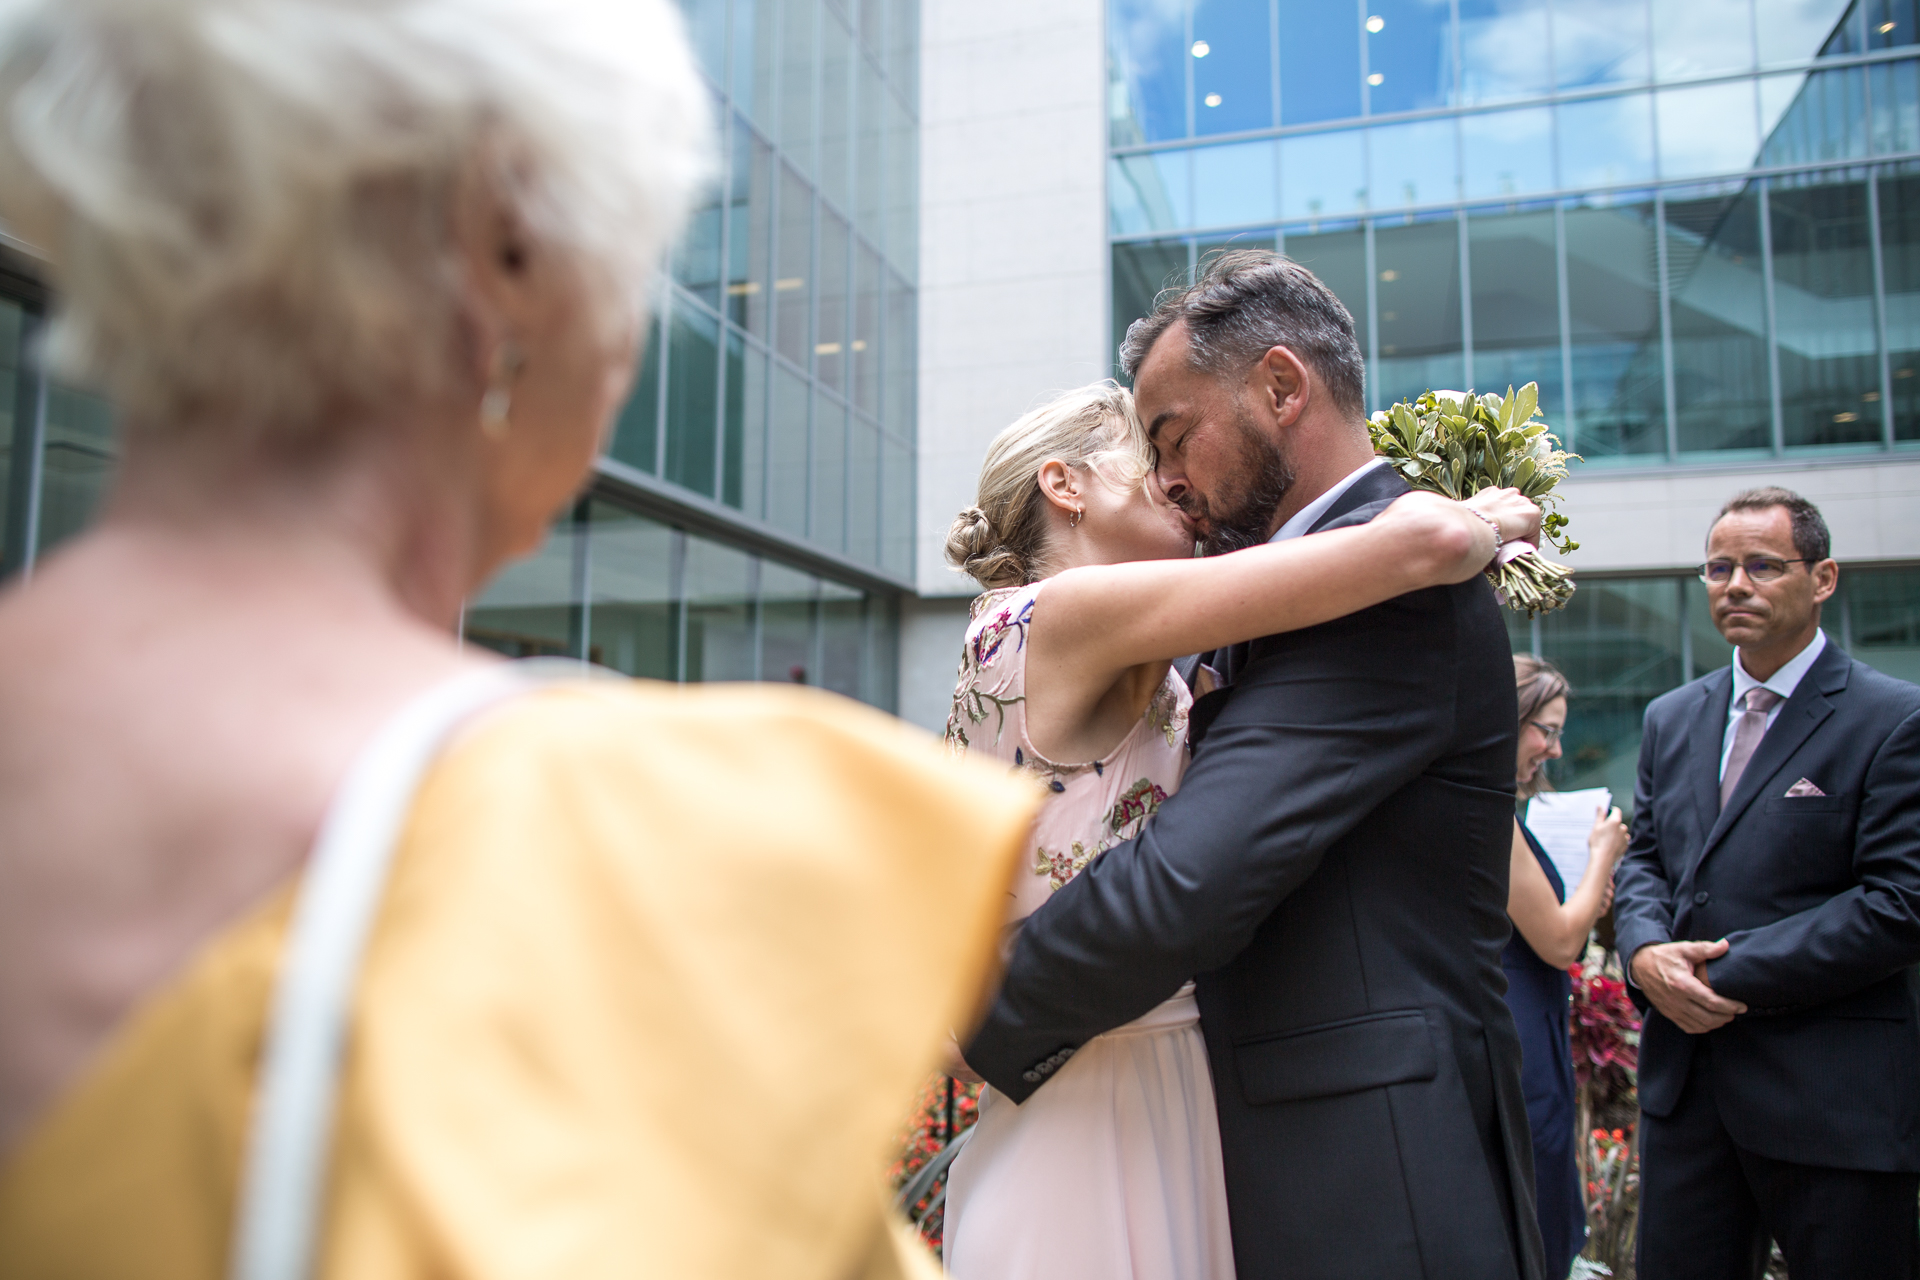 Ontario, Canada Elopement Wedding Picture | The newly married couple seal their marriage with a kiss